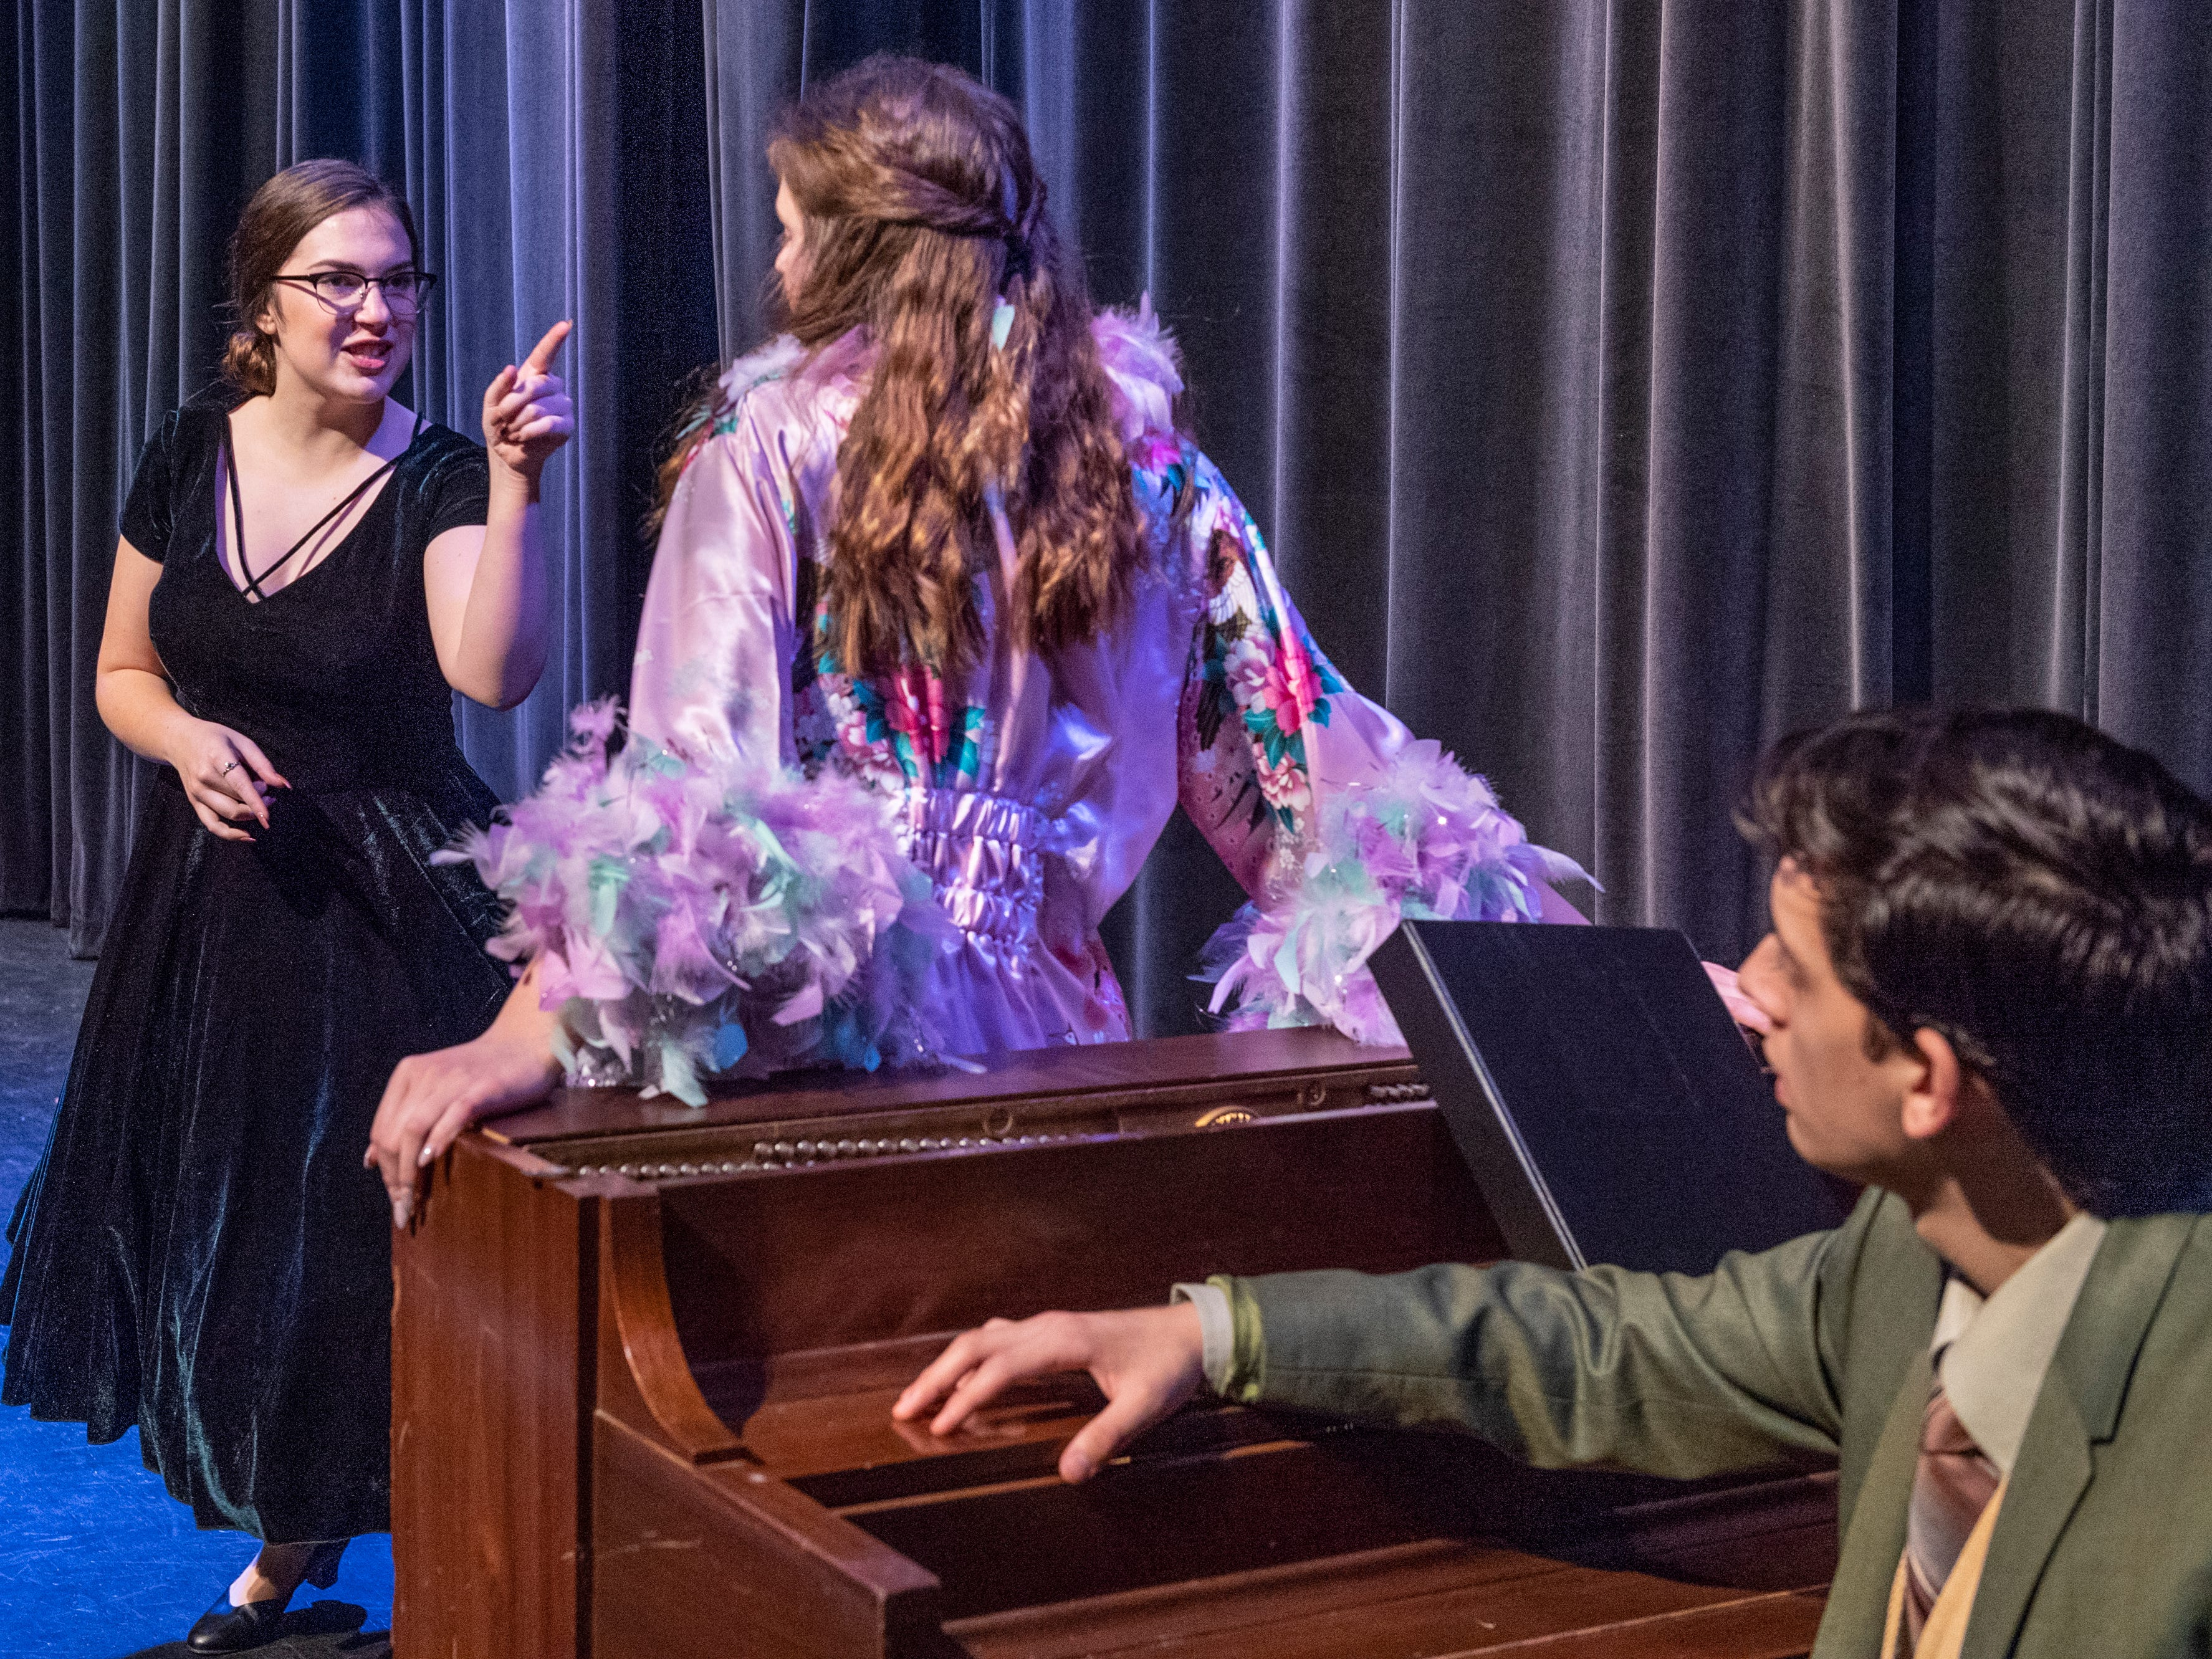 Jessica Knight, left, Emma Newcomb and John Piper rehearse for El Diamante's production of the musical Curtains! at the L.J. Williams Community Theatre on Tuesday, January 8, 2019. The first of four performances is Thursday, January 17 at 7:30 p.m.